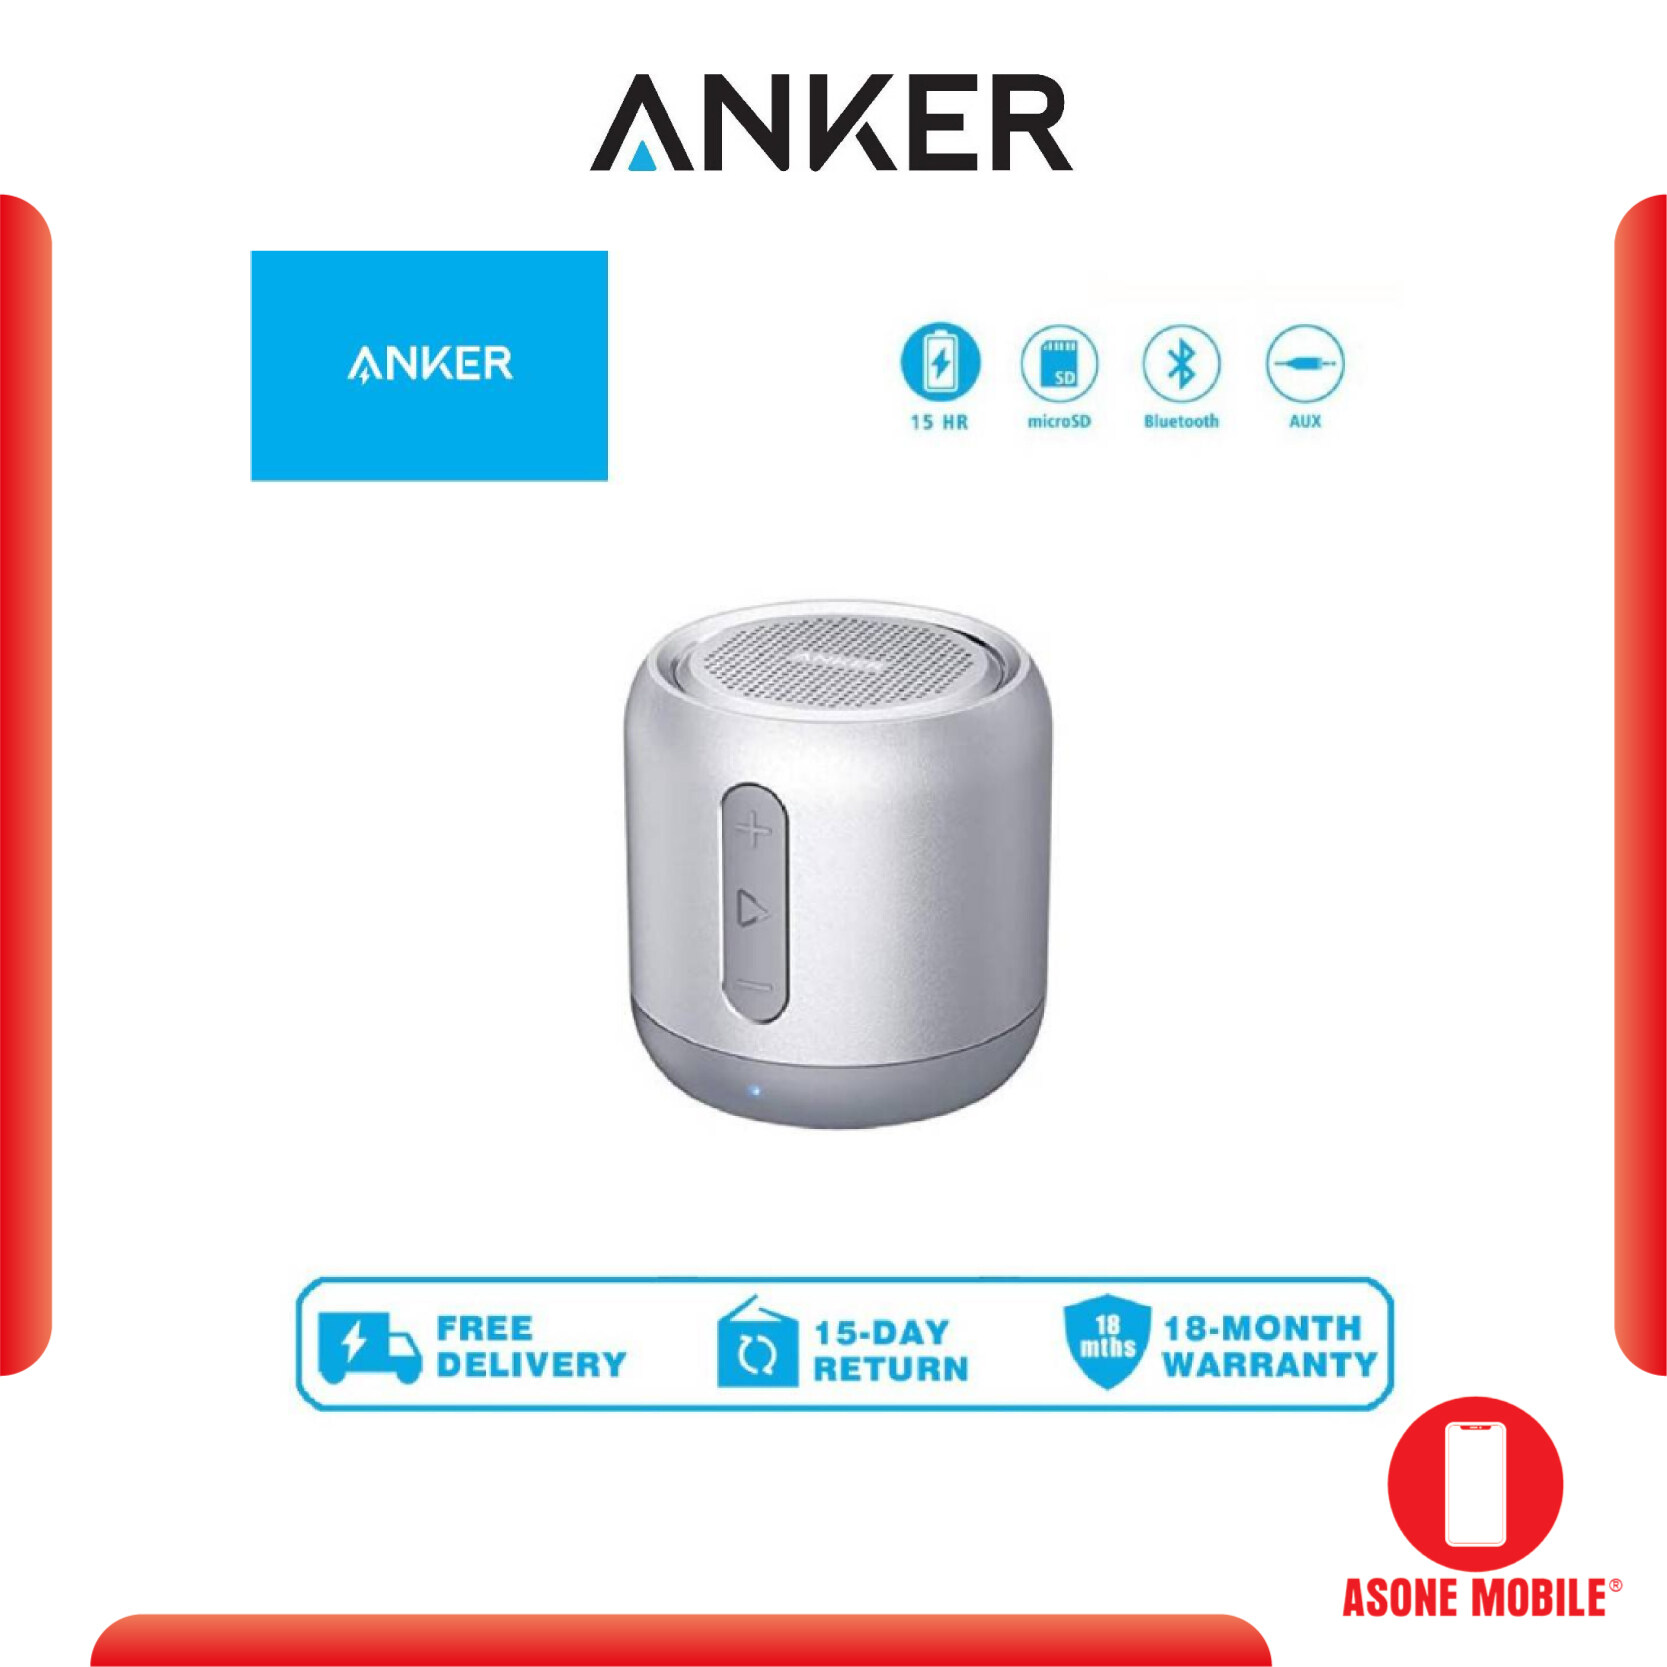 Anker A3101 SoundCore Mini 5W Bluetooth 4.0 Wireless Speaker with 15-Hour Playtime, Enhanced Bass, Noise-Cancelling